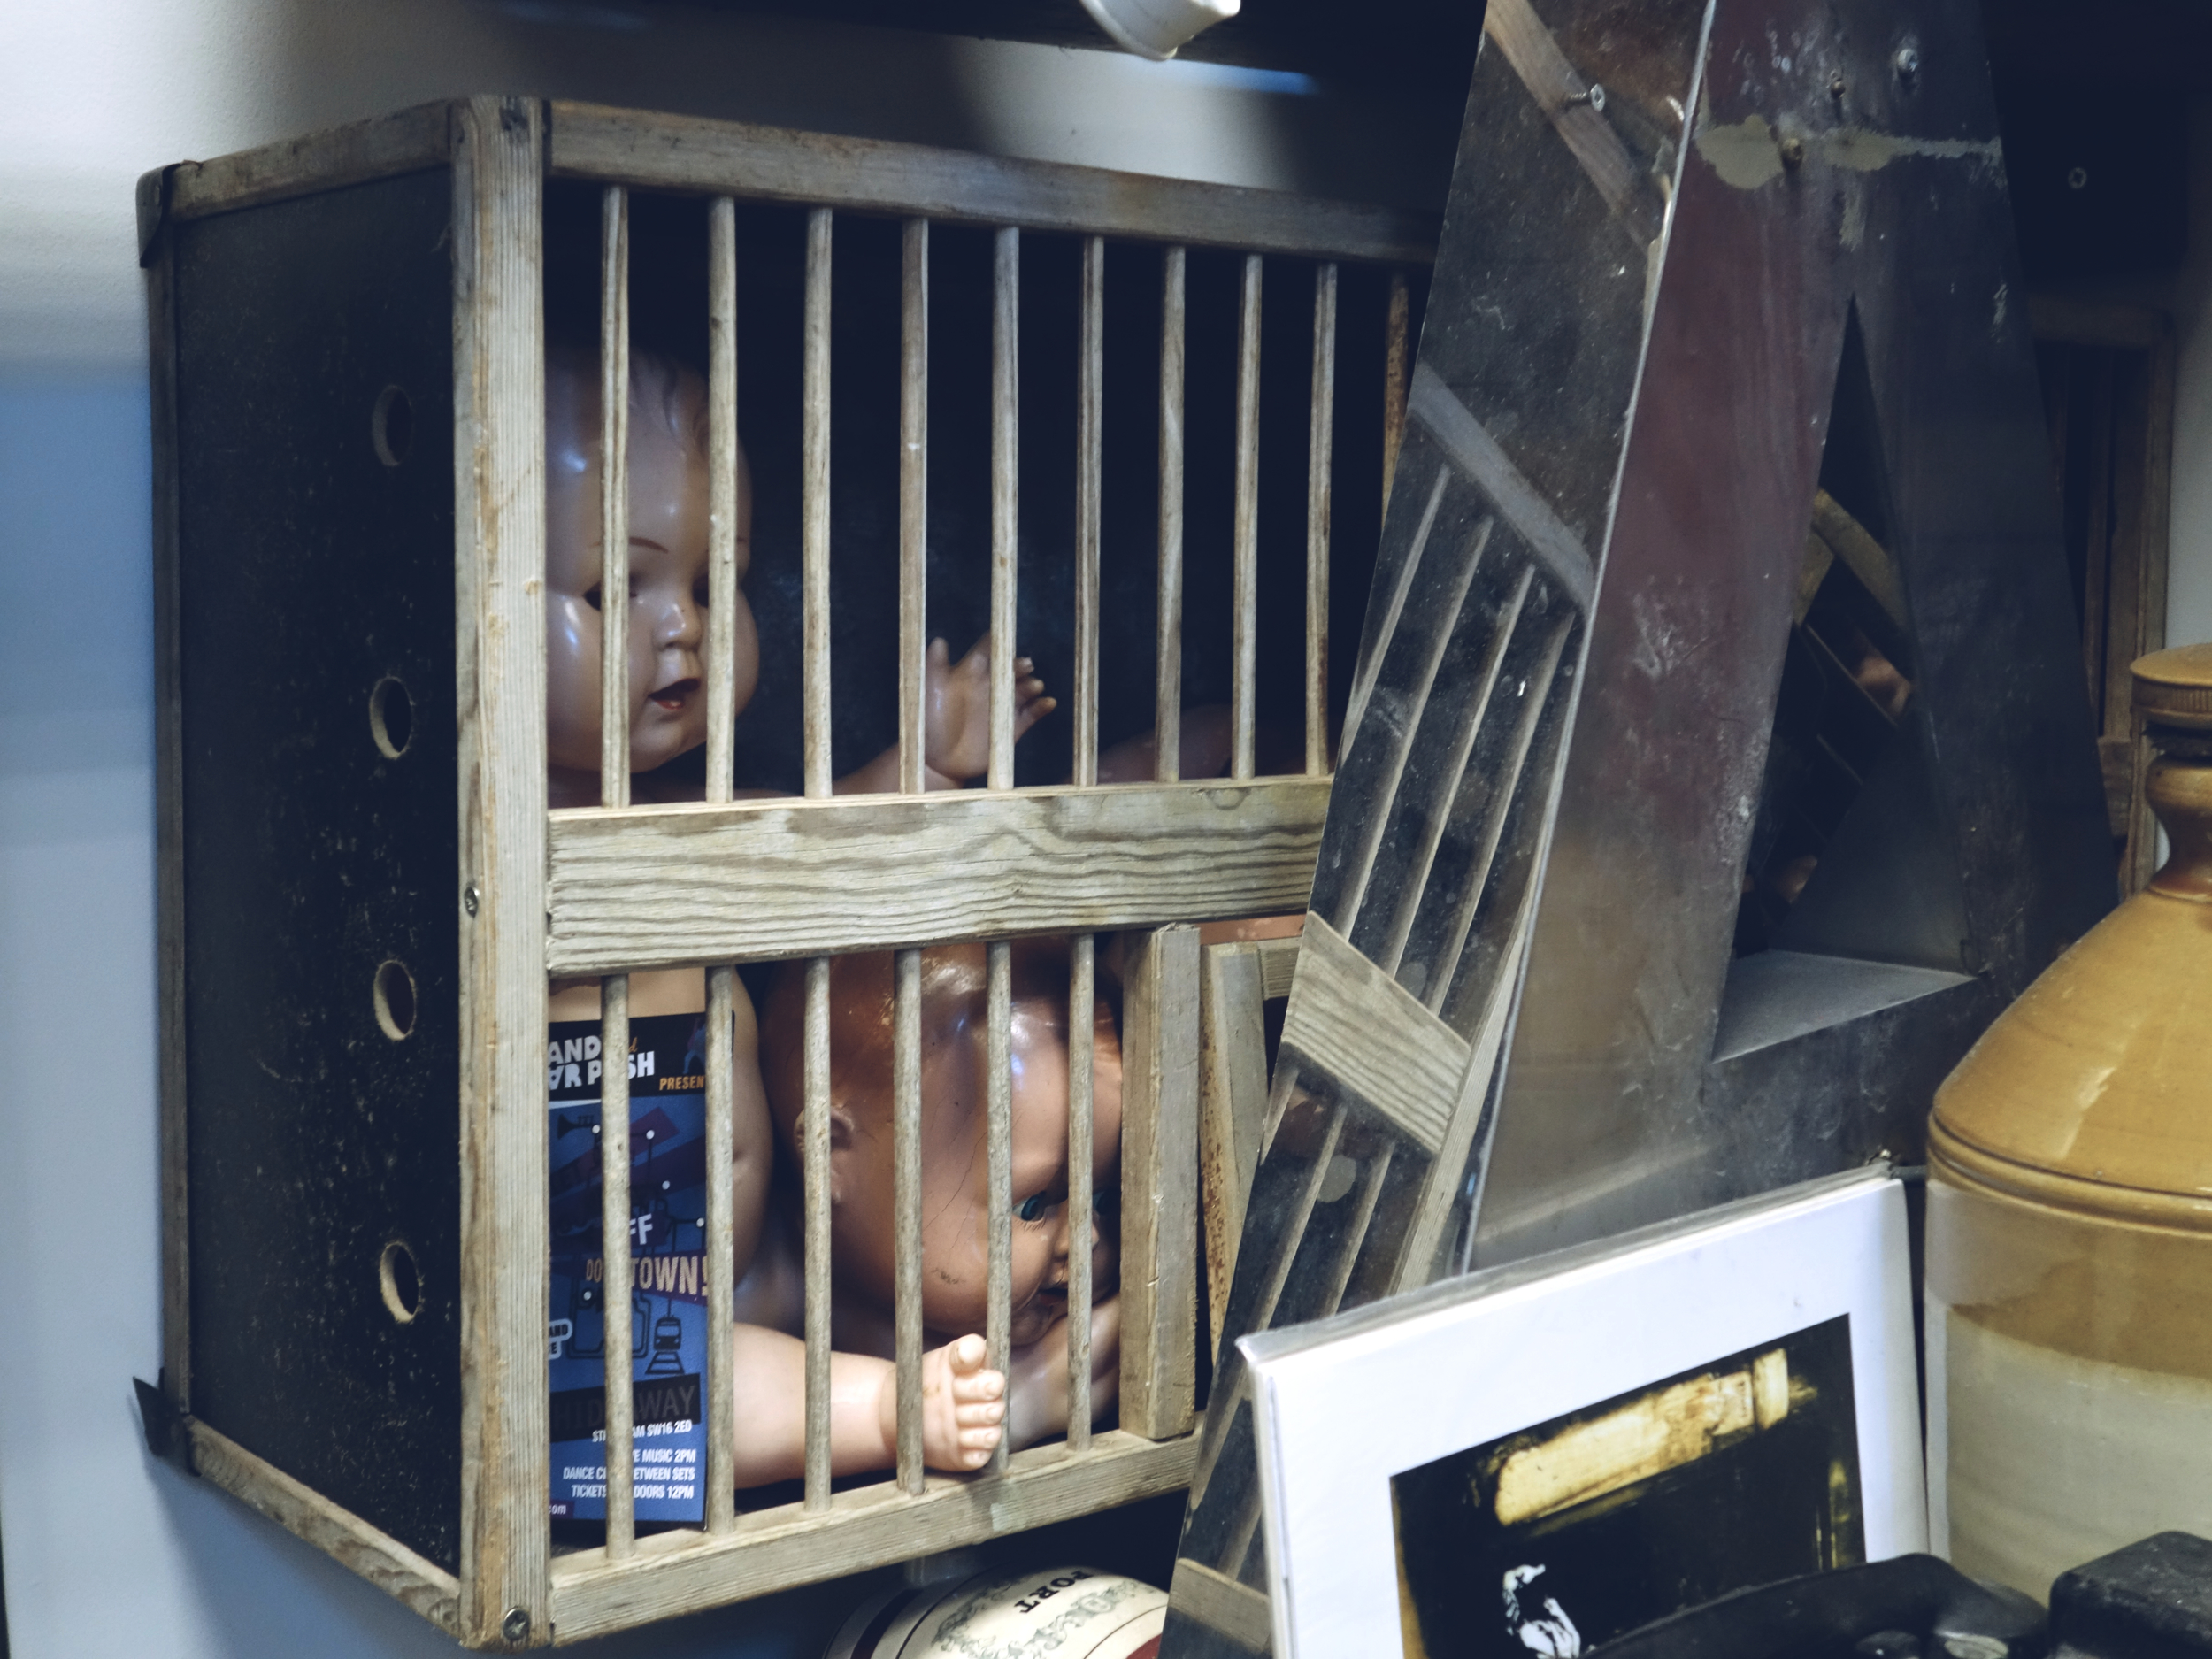 Dolls in a cage